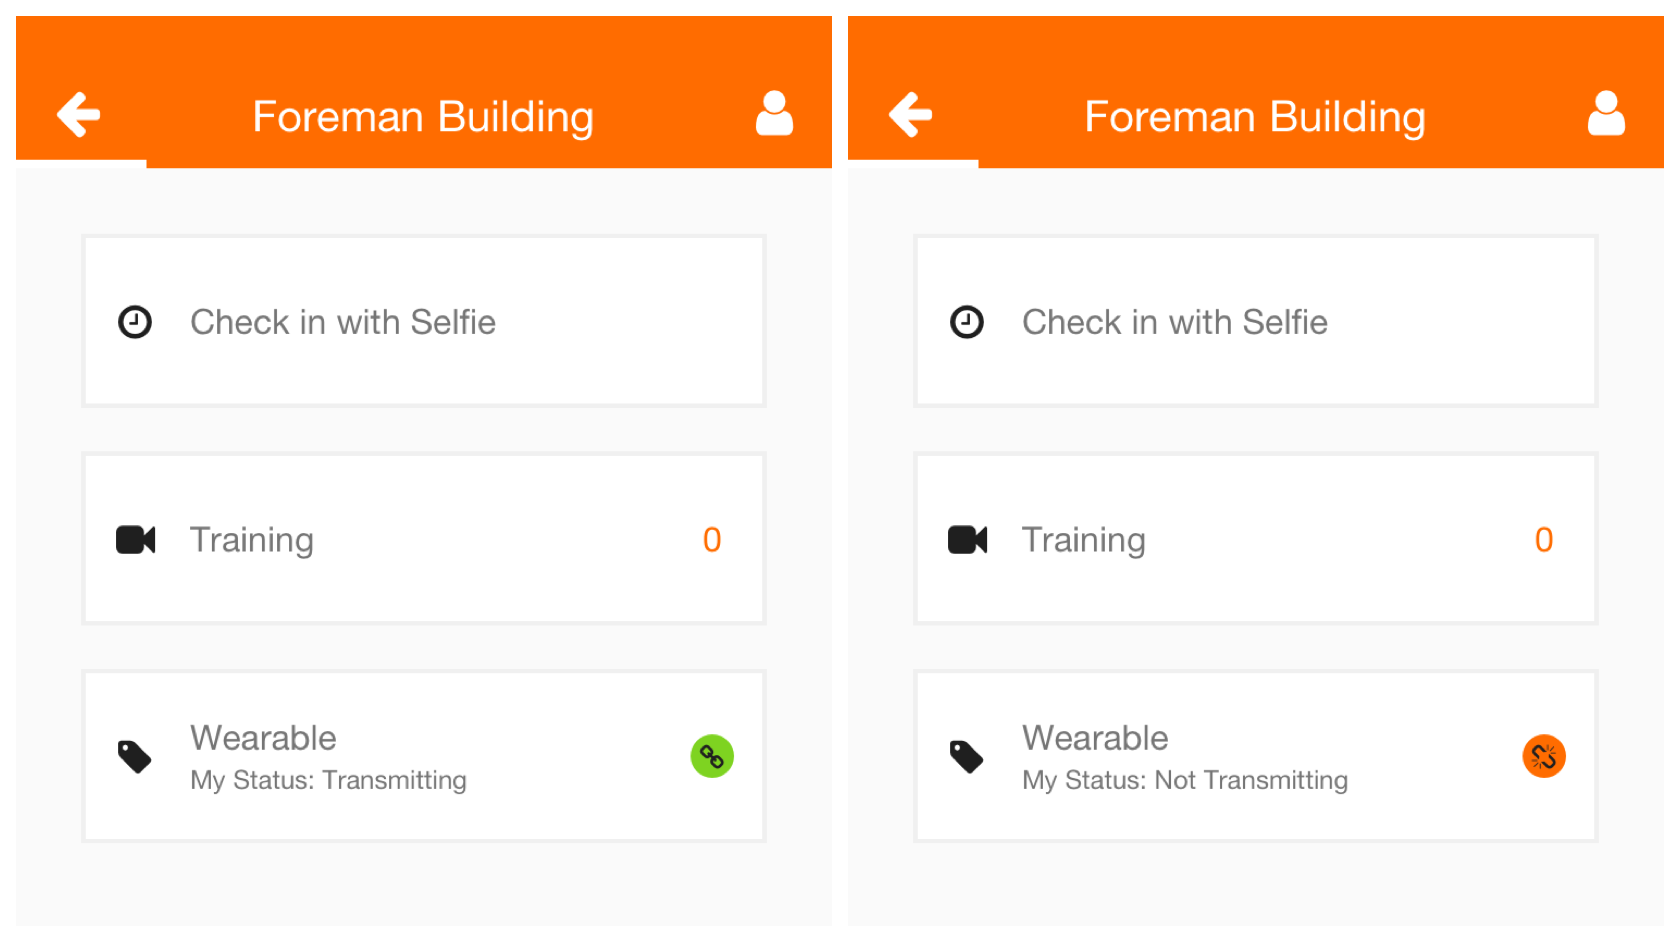 Screenshots of the wearable provisioning statuses.